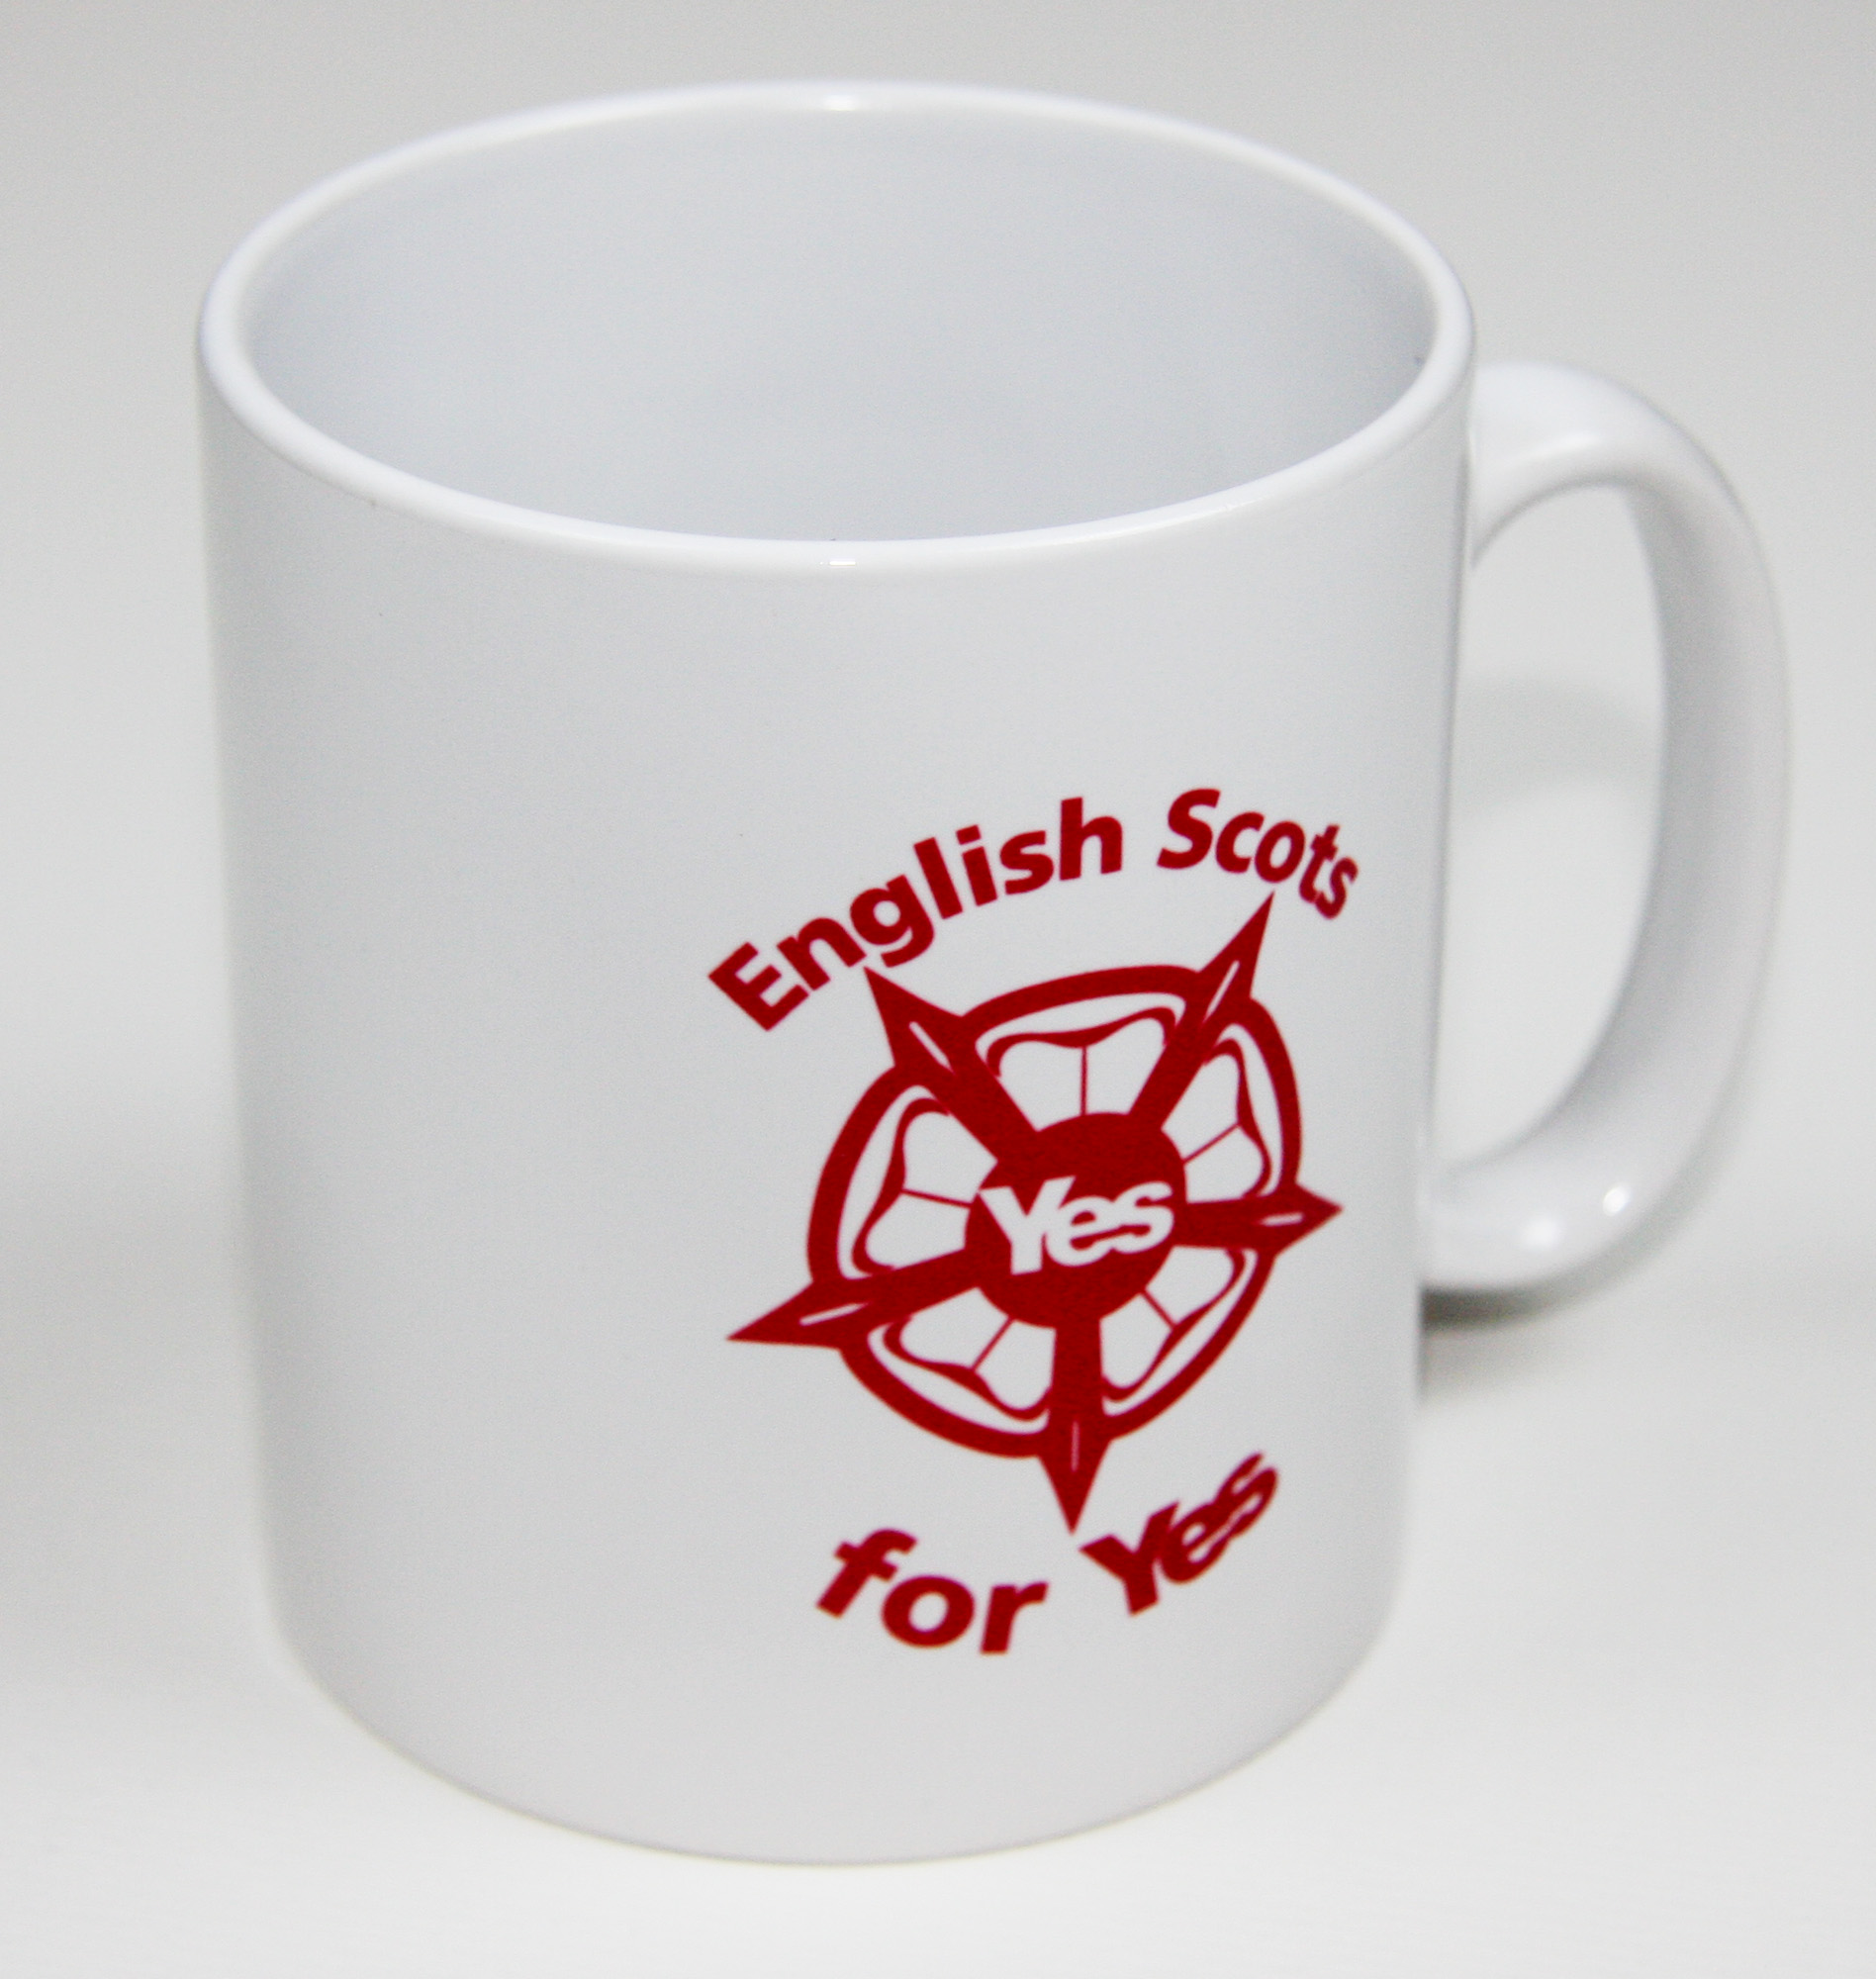 English Scots for Yes mug